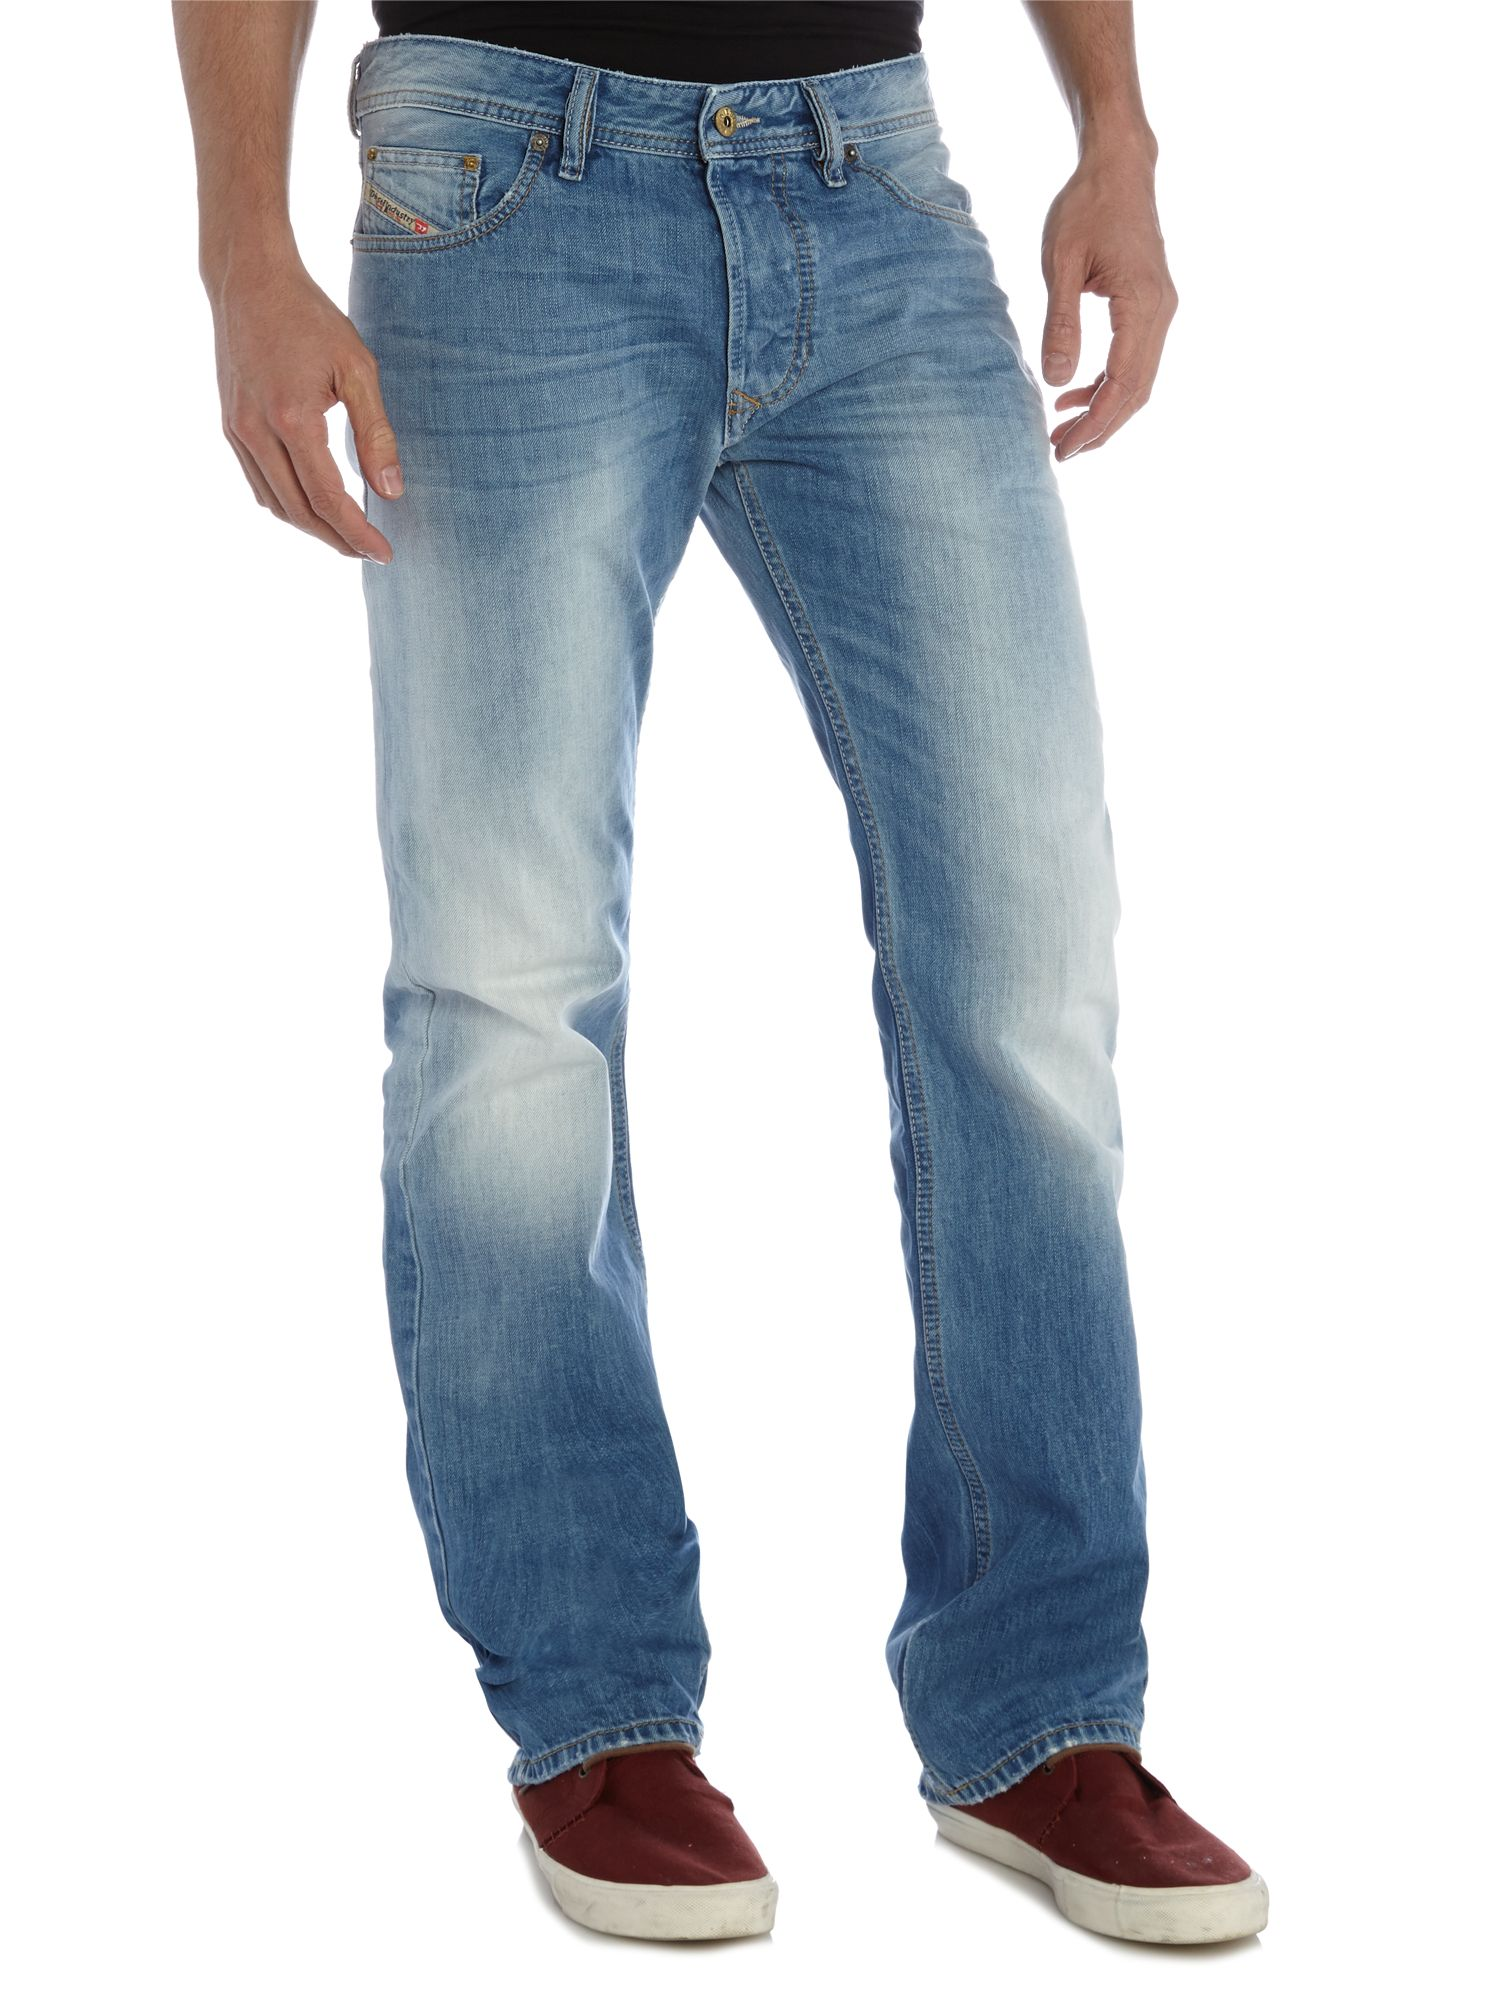 Larkee 0827F regular straight fit jean